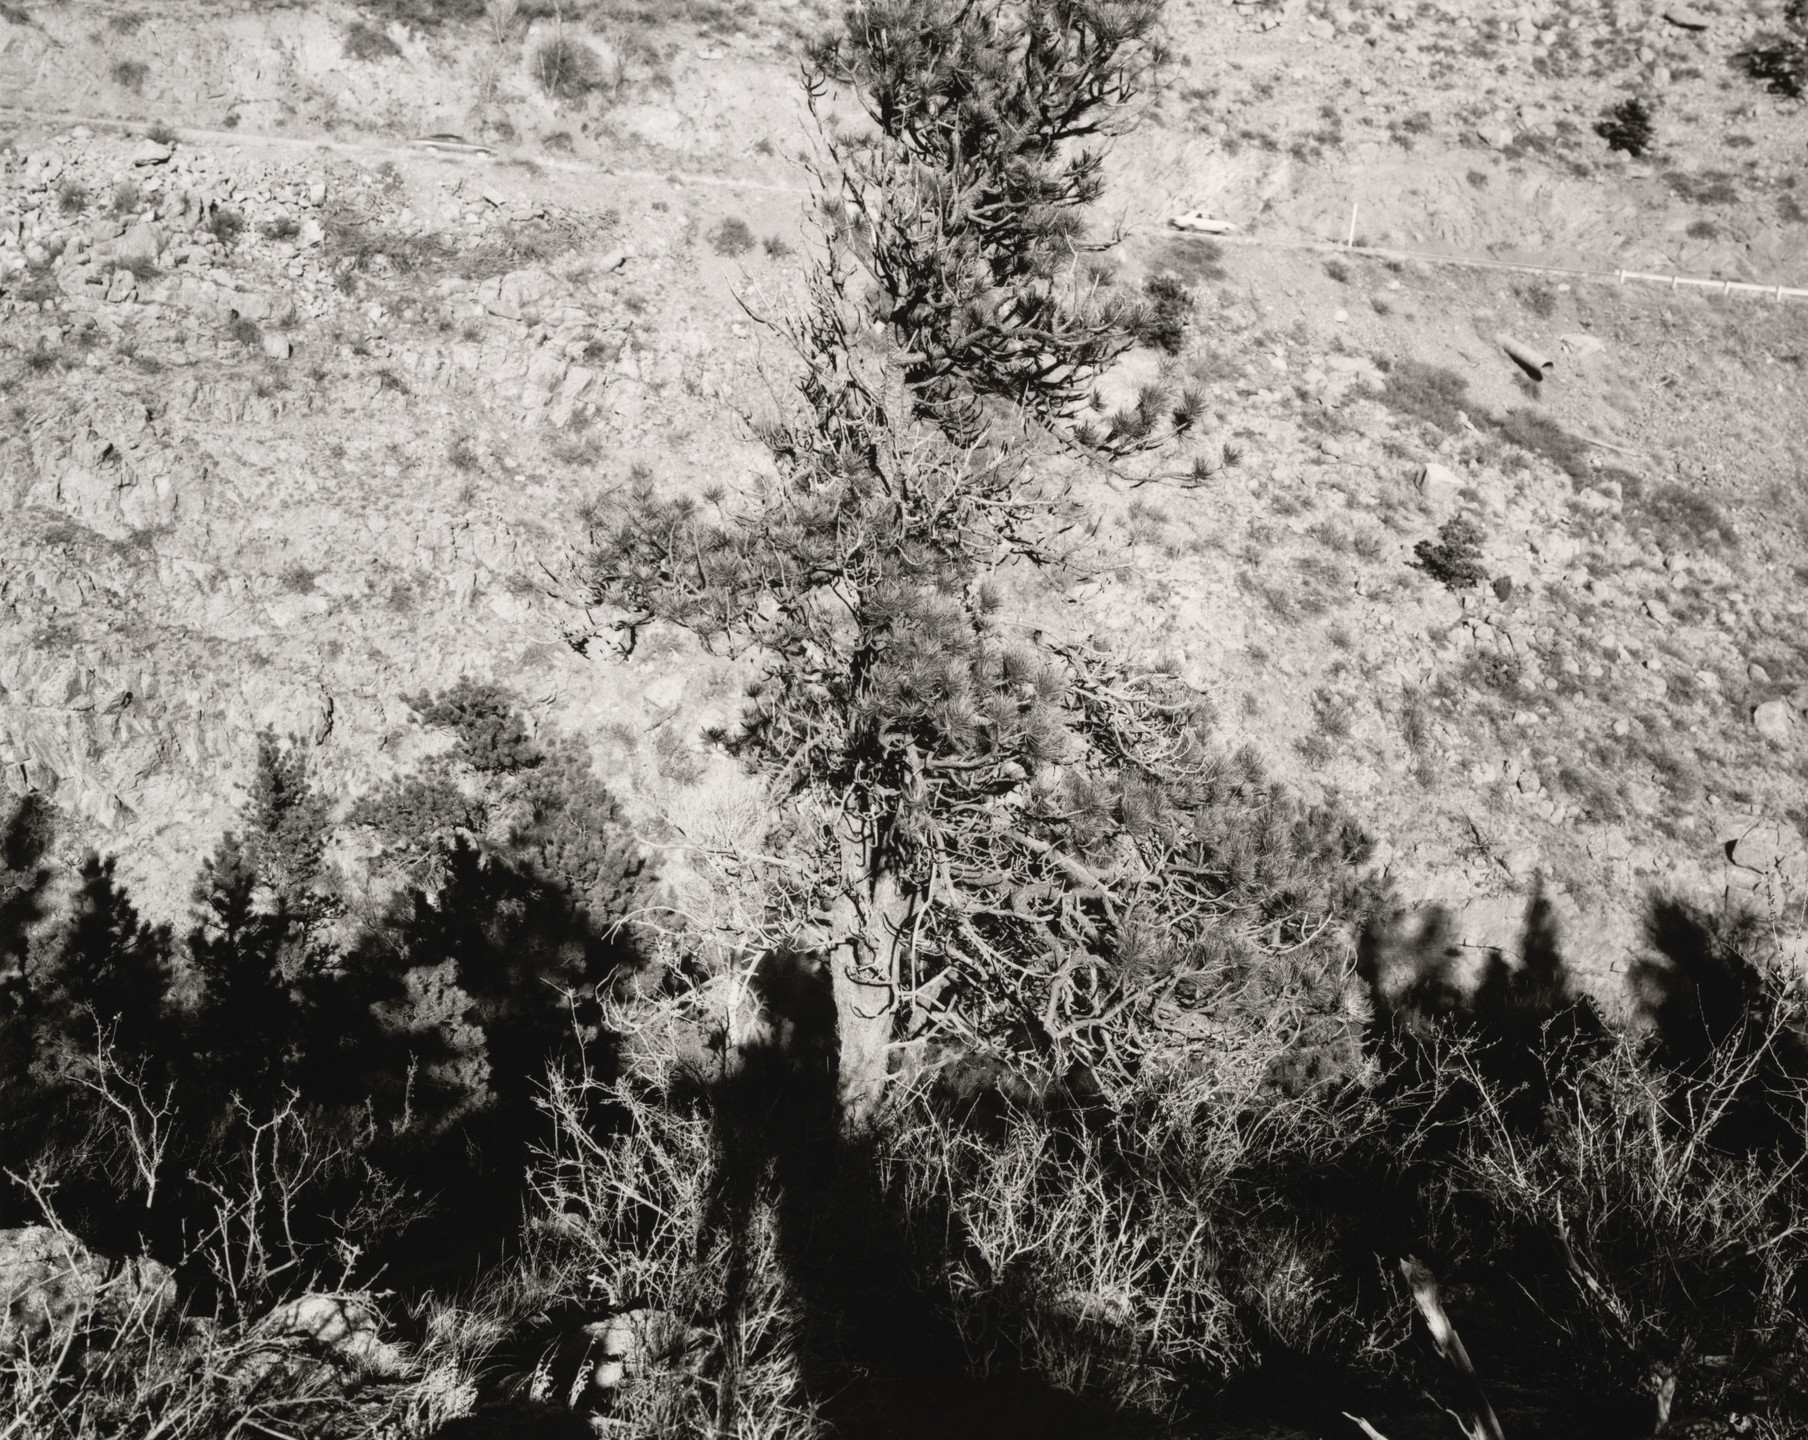 Robert Adams. Federal Highway 36, North St. Vrain Canyon, Larimer County, Colorado. 1979